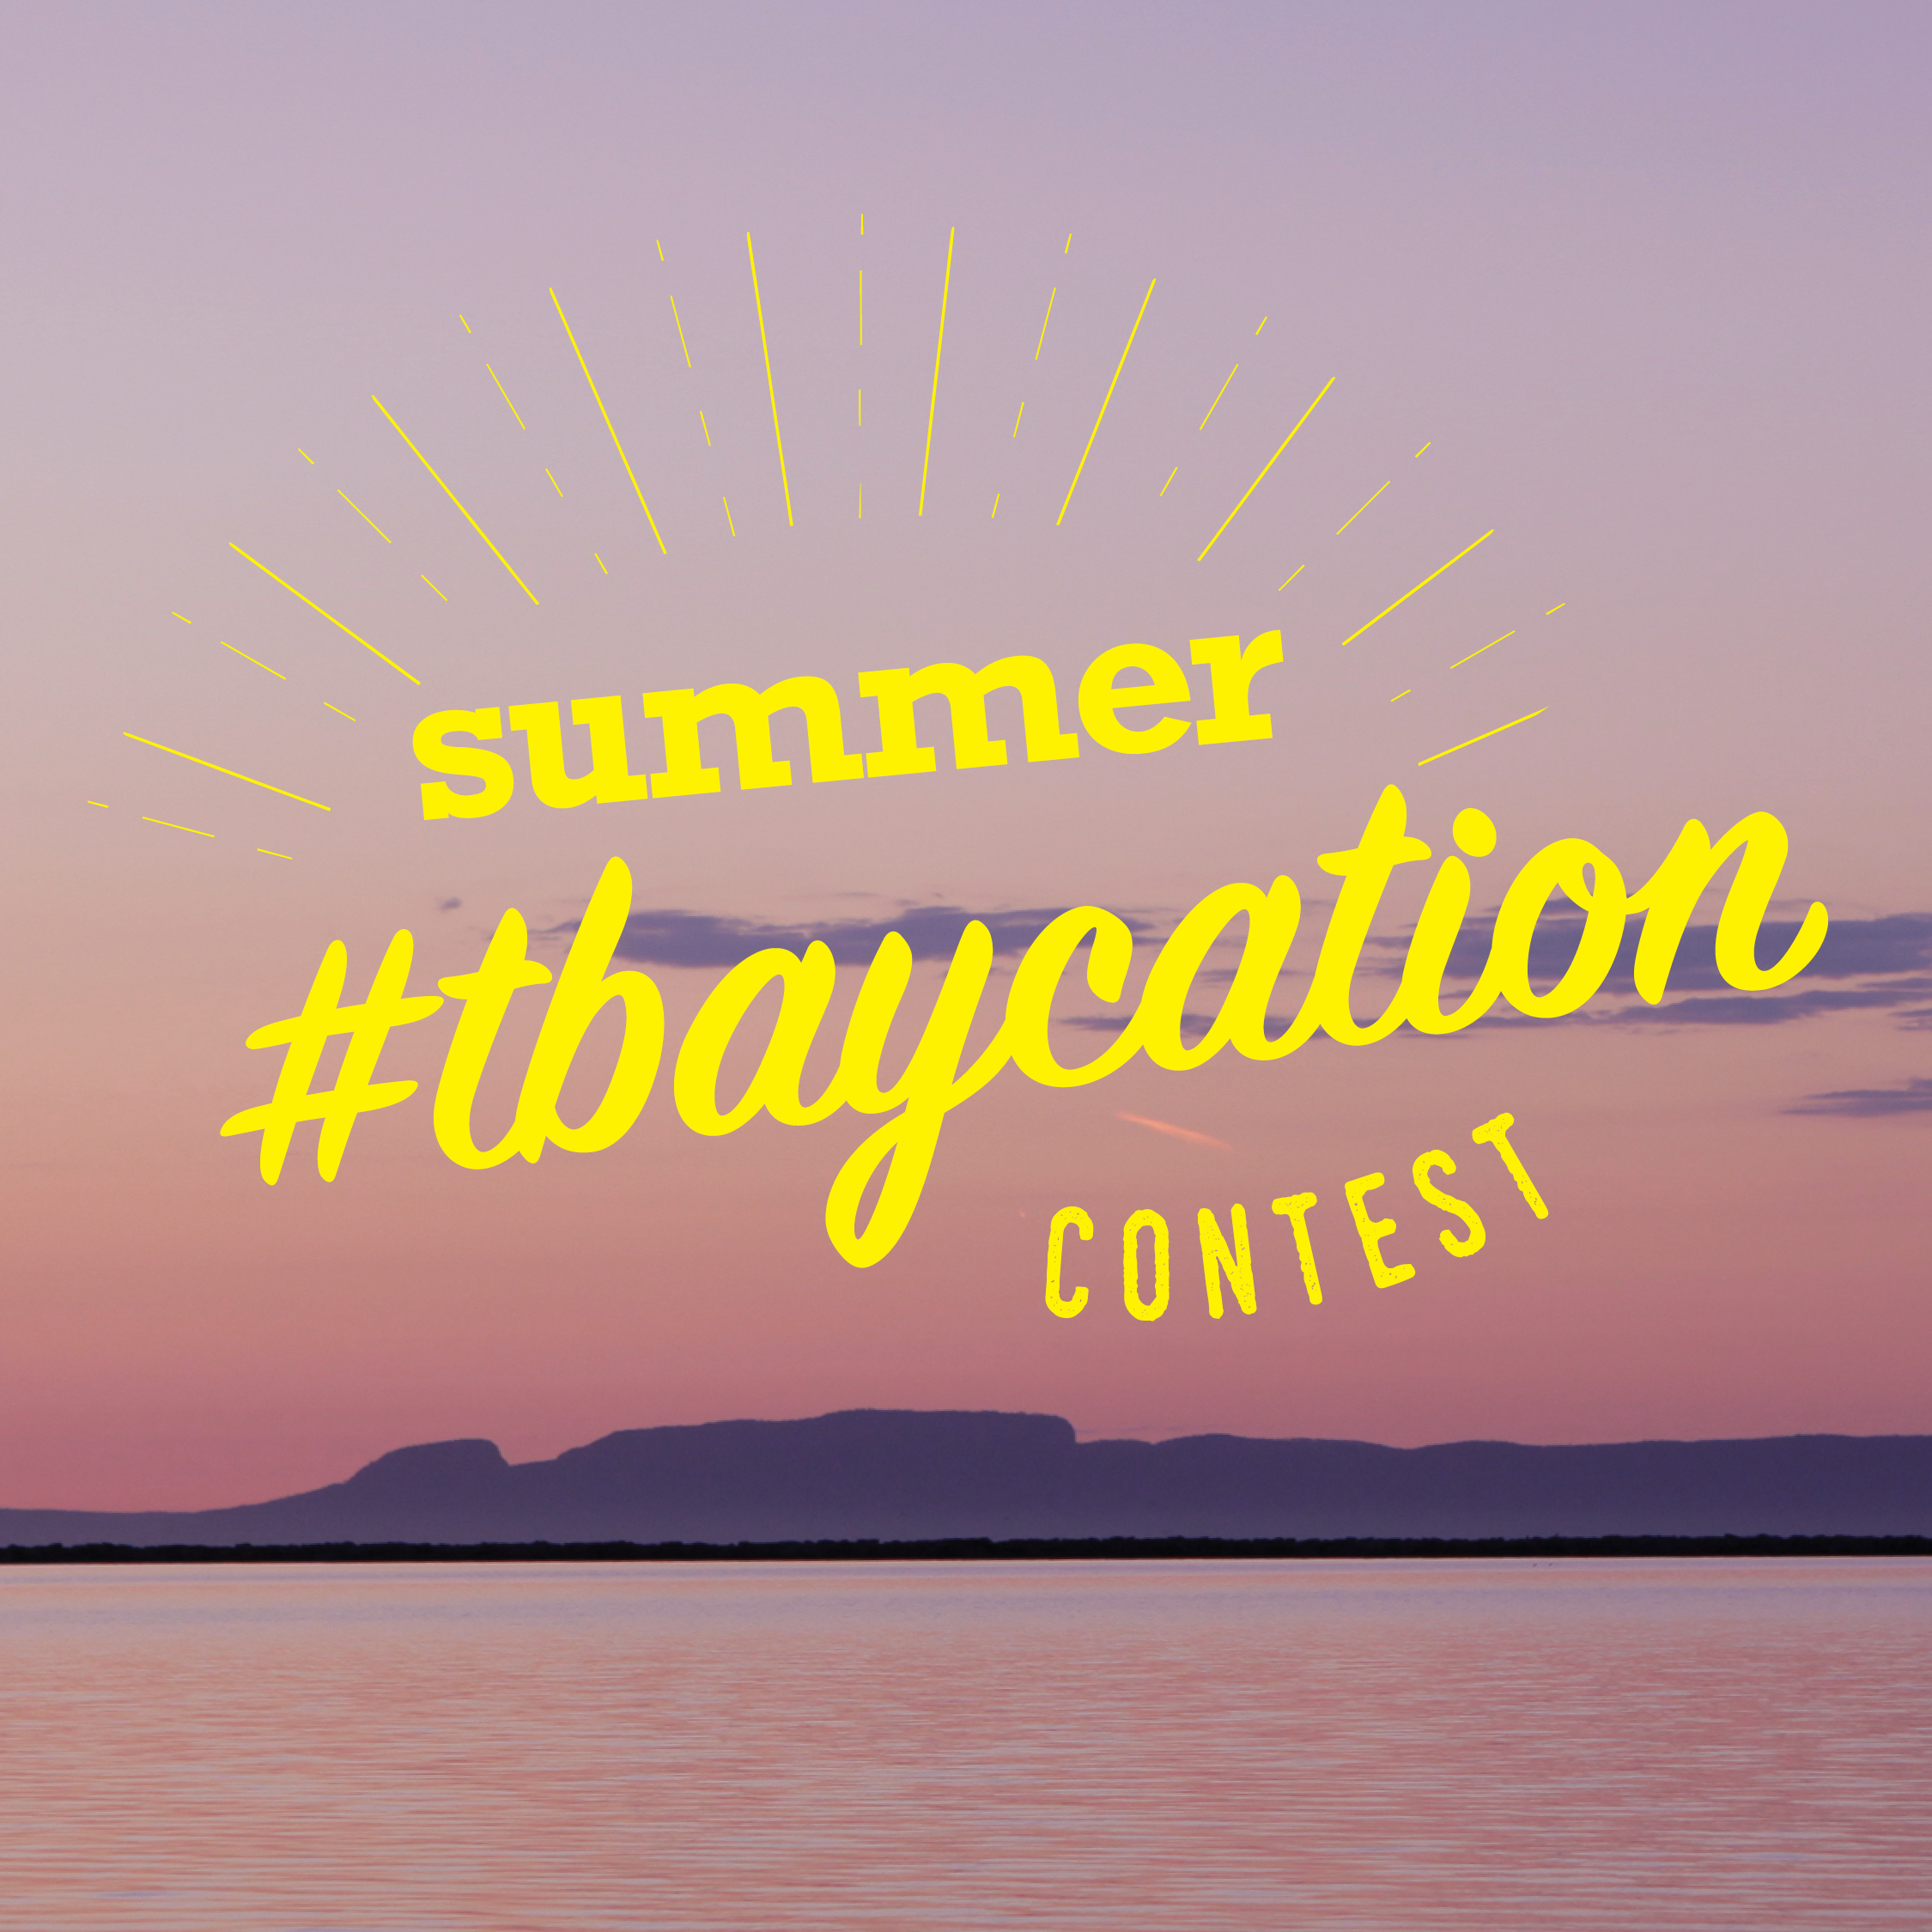 Summer #tbaycation contest